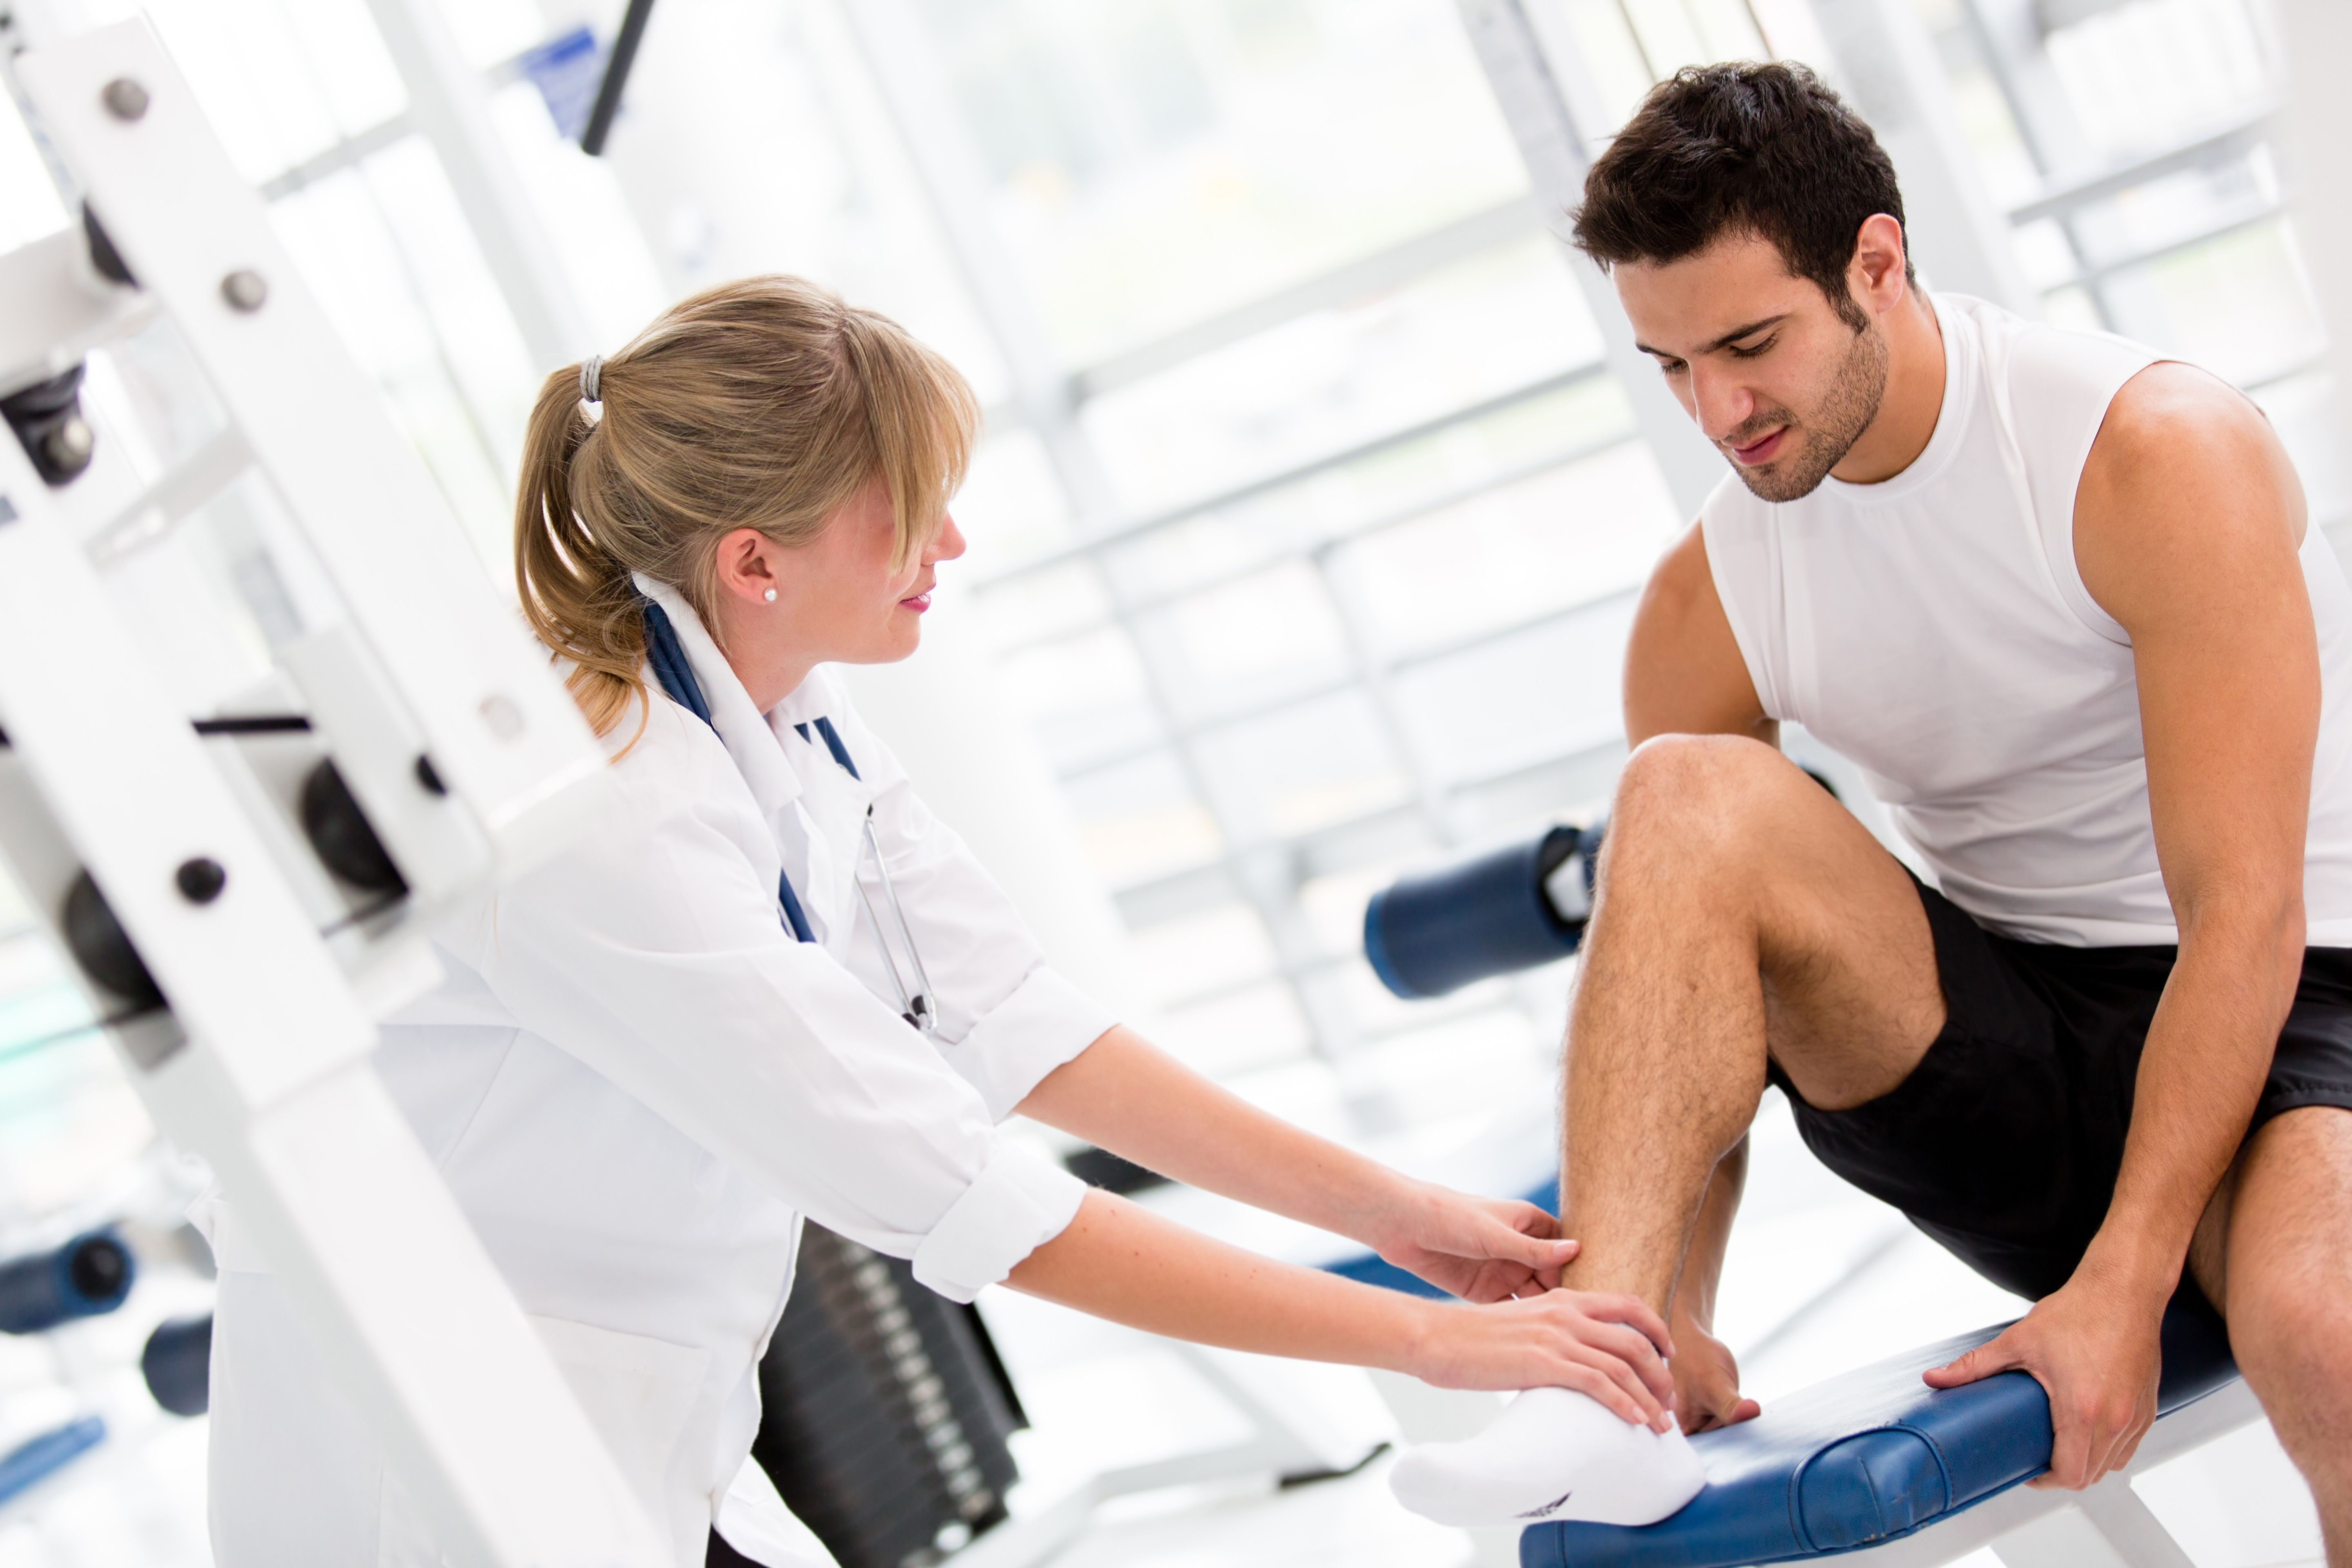 Looking for a sports injury specialist in pune, or do you